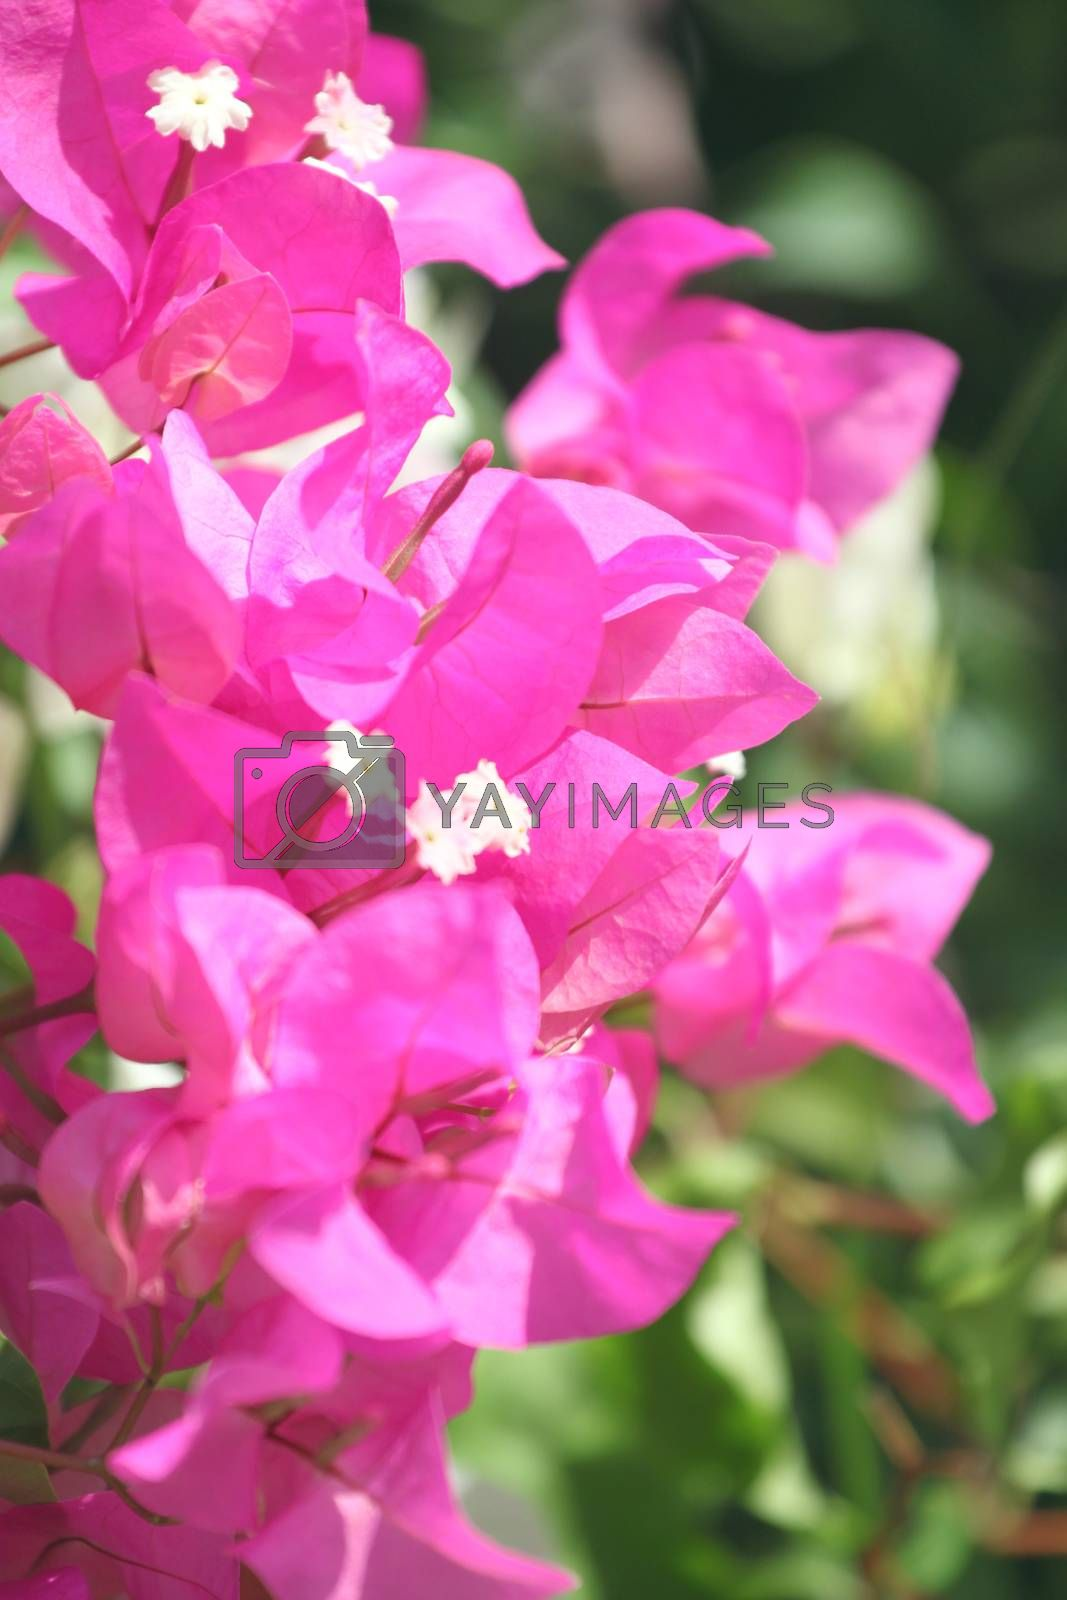 Purple bougainvillea flowers in the garden.